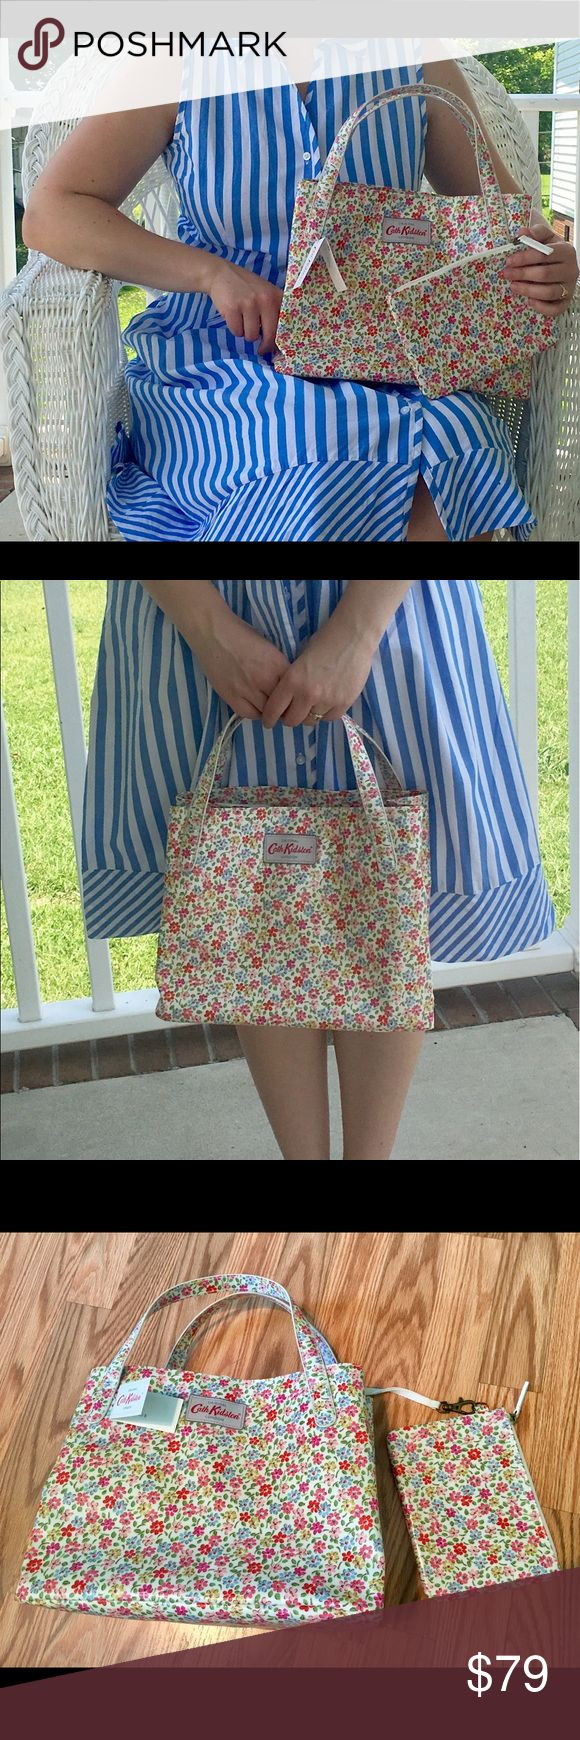 25+ best ideas about Cath kidston bags on Pinterest